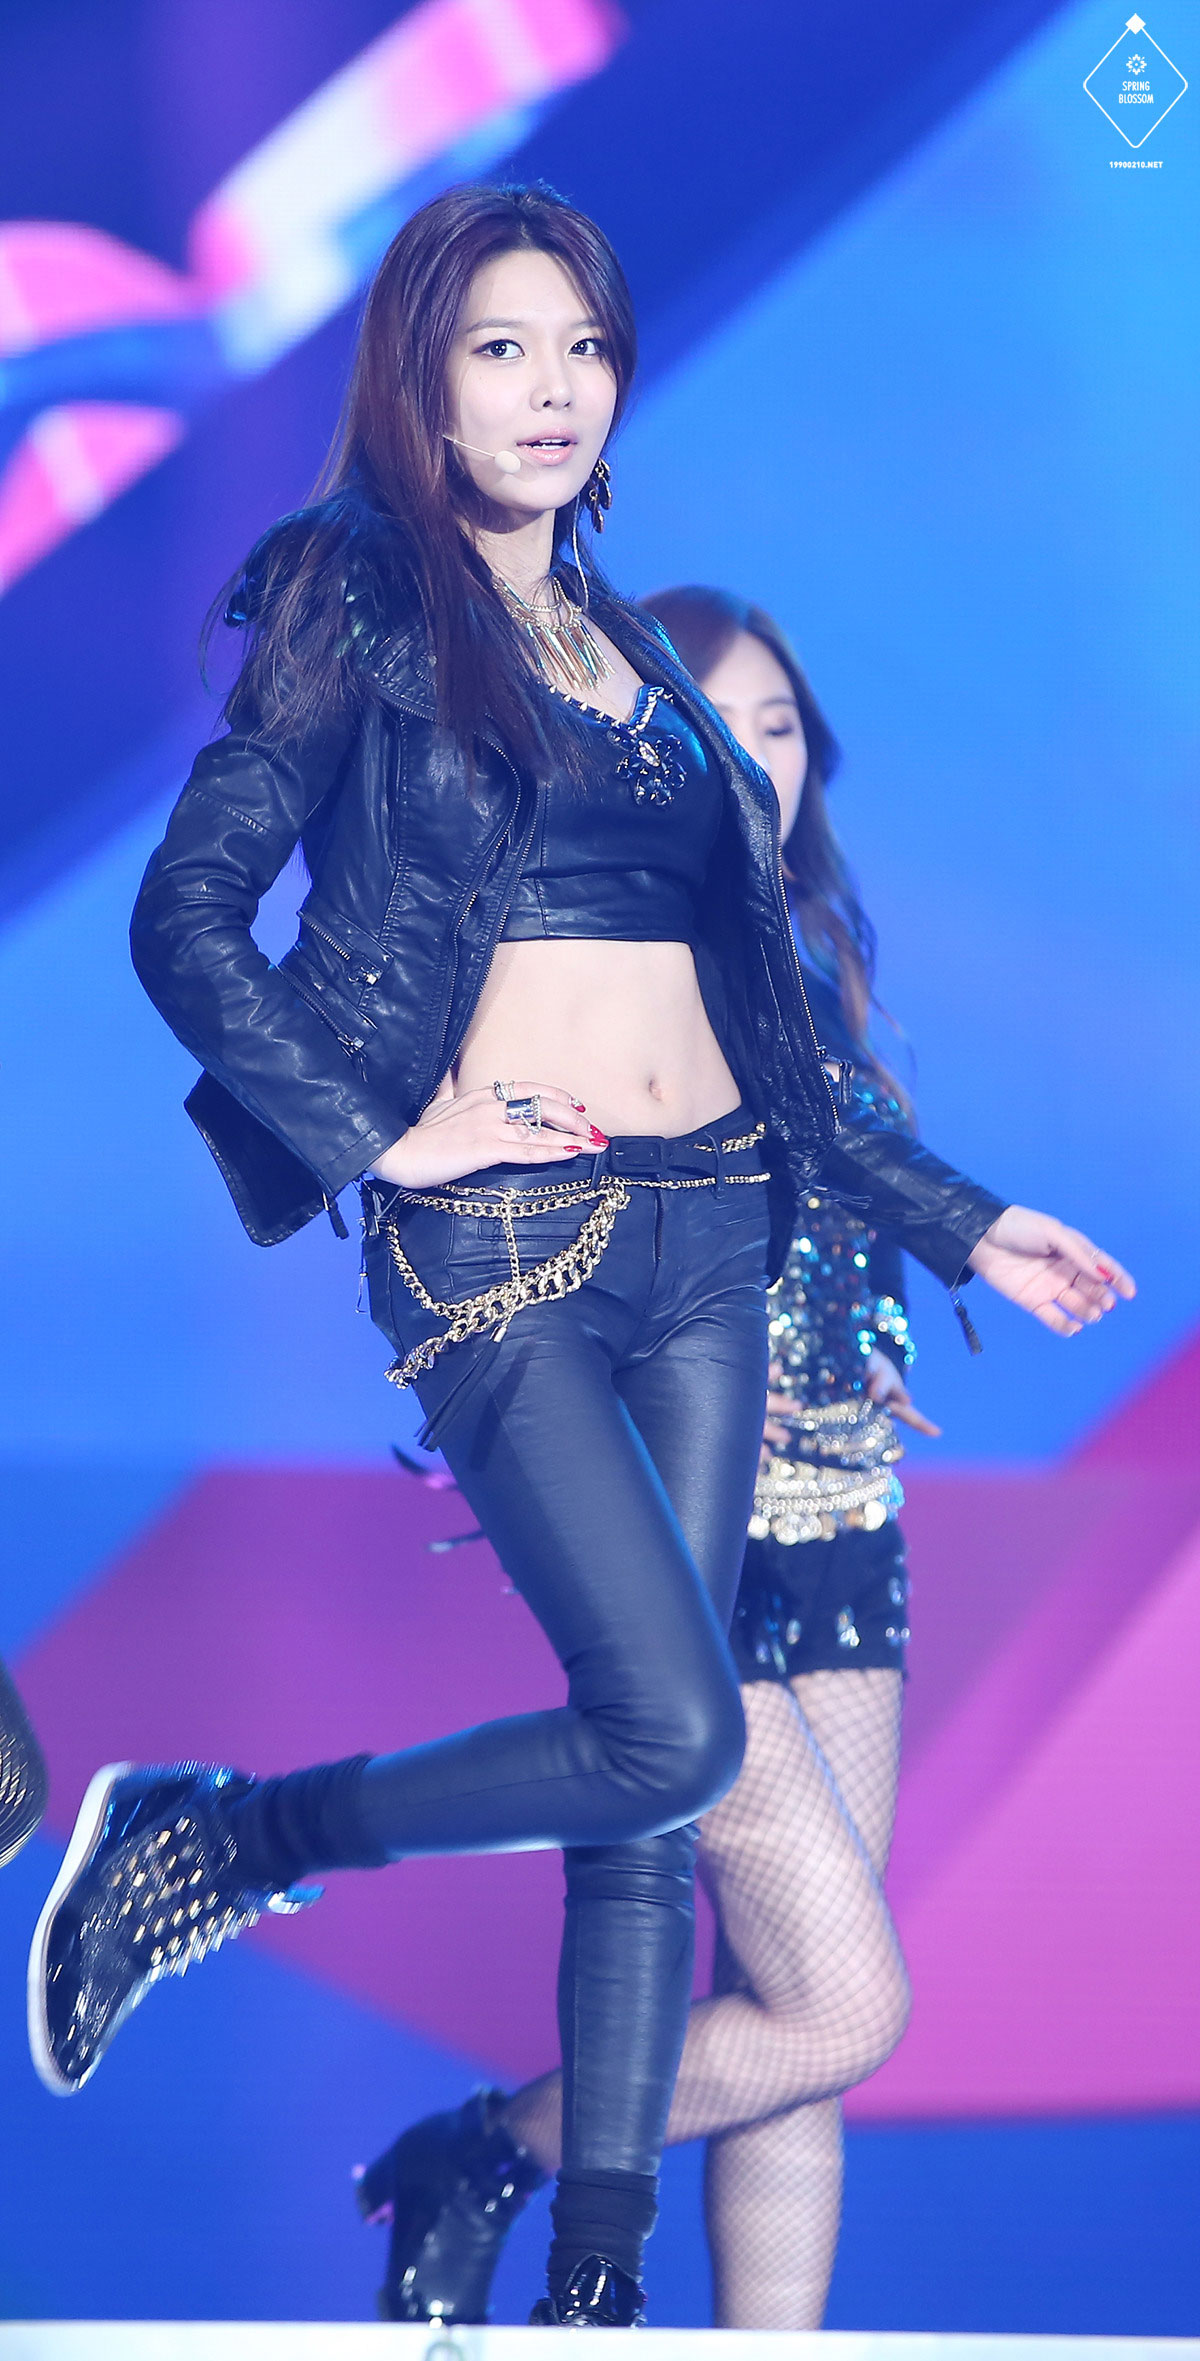 Sooyoung @ SBS Music Festival 2013